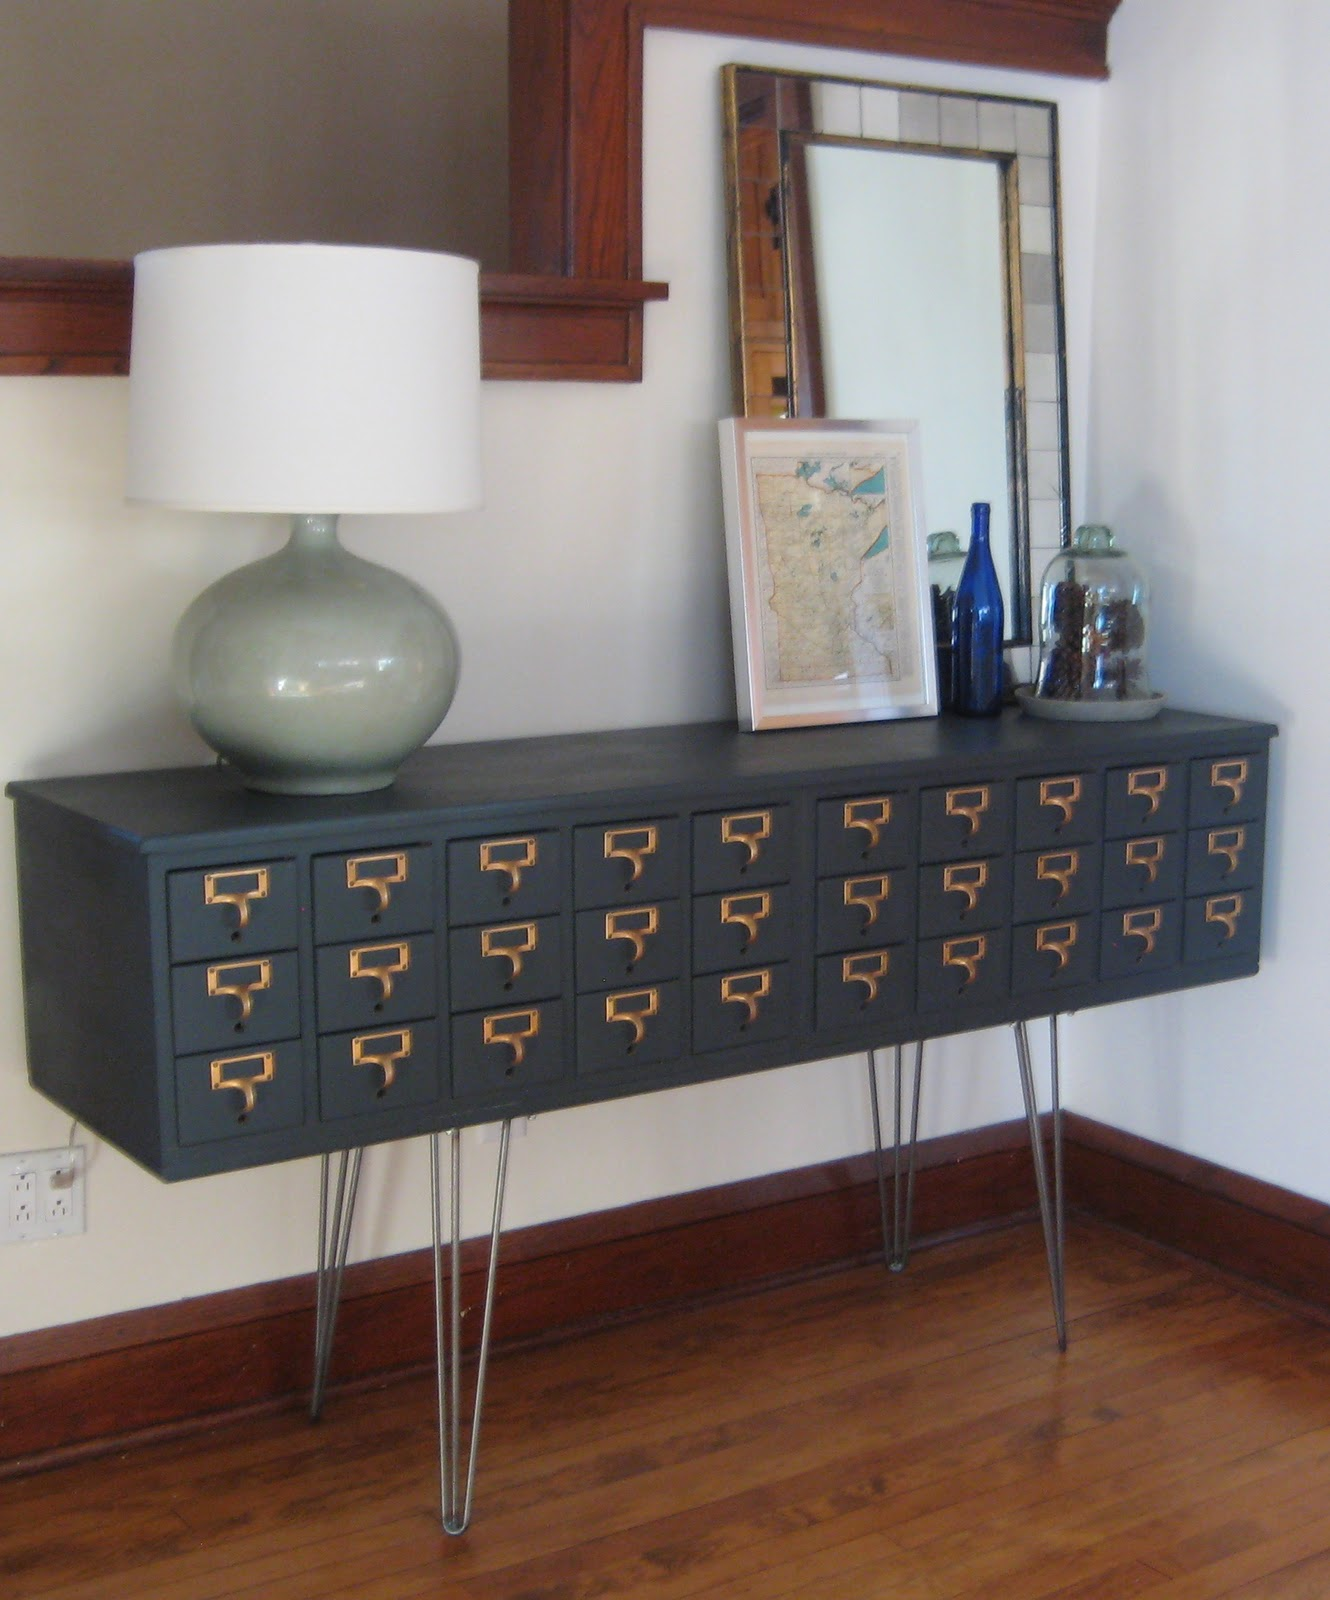 Dishfunctional Designs Vintage Library Card Catalogs Transformed Into Awesome Furniture